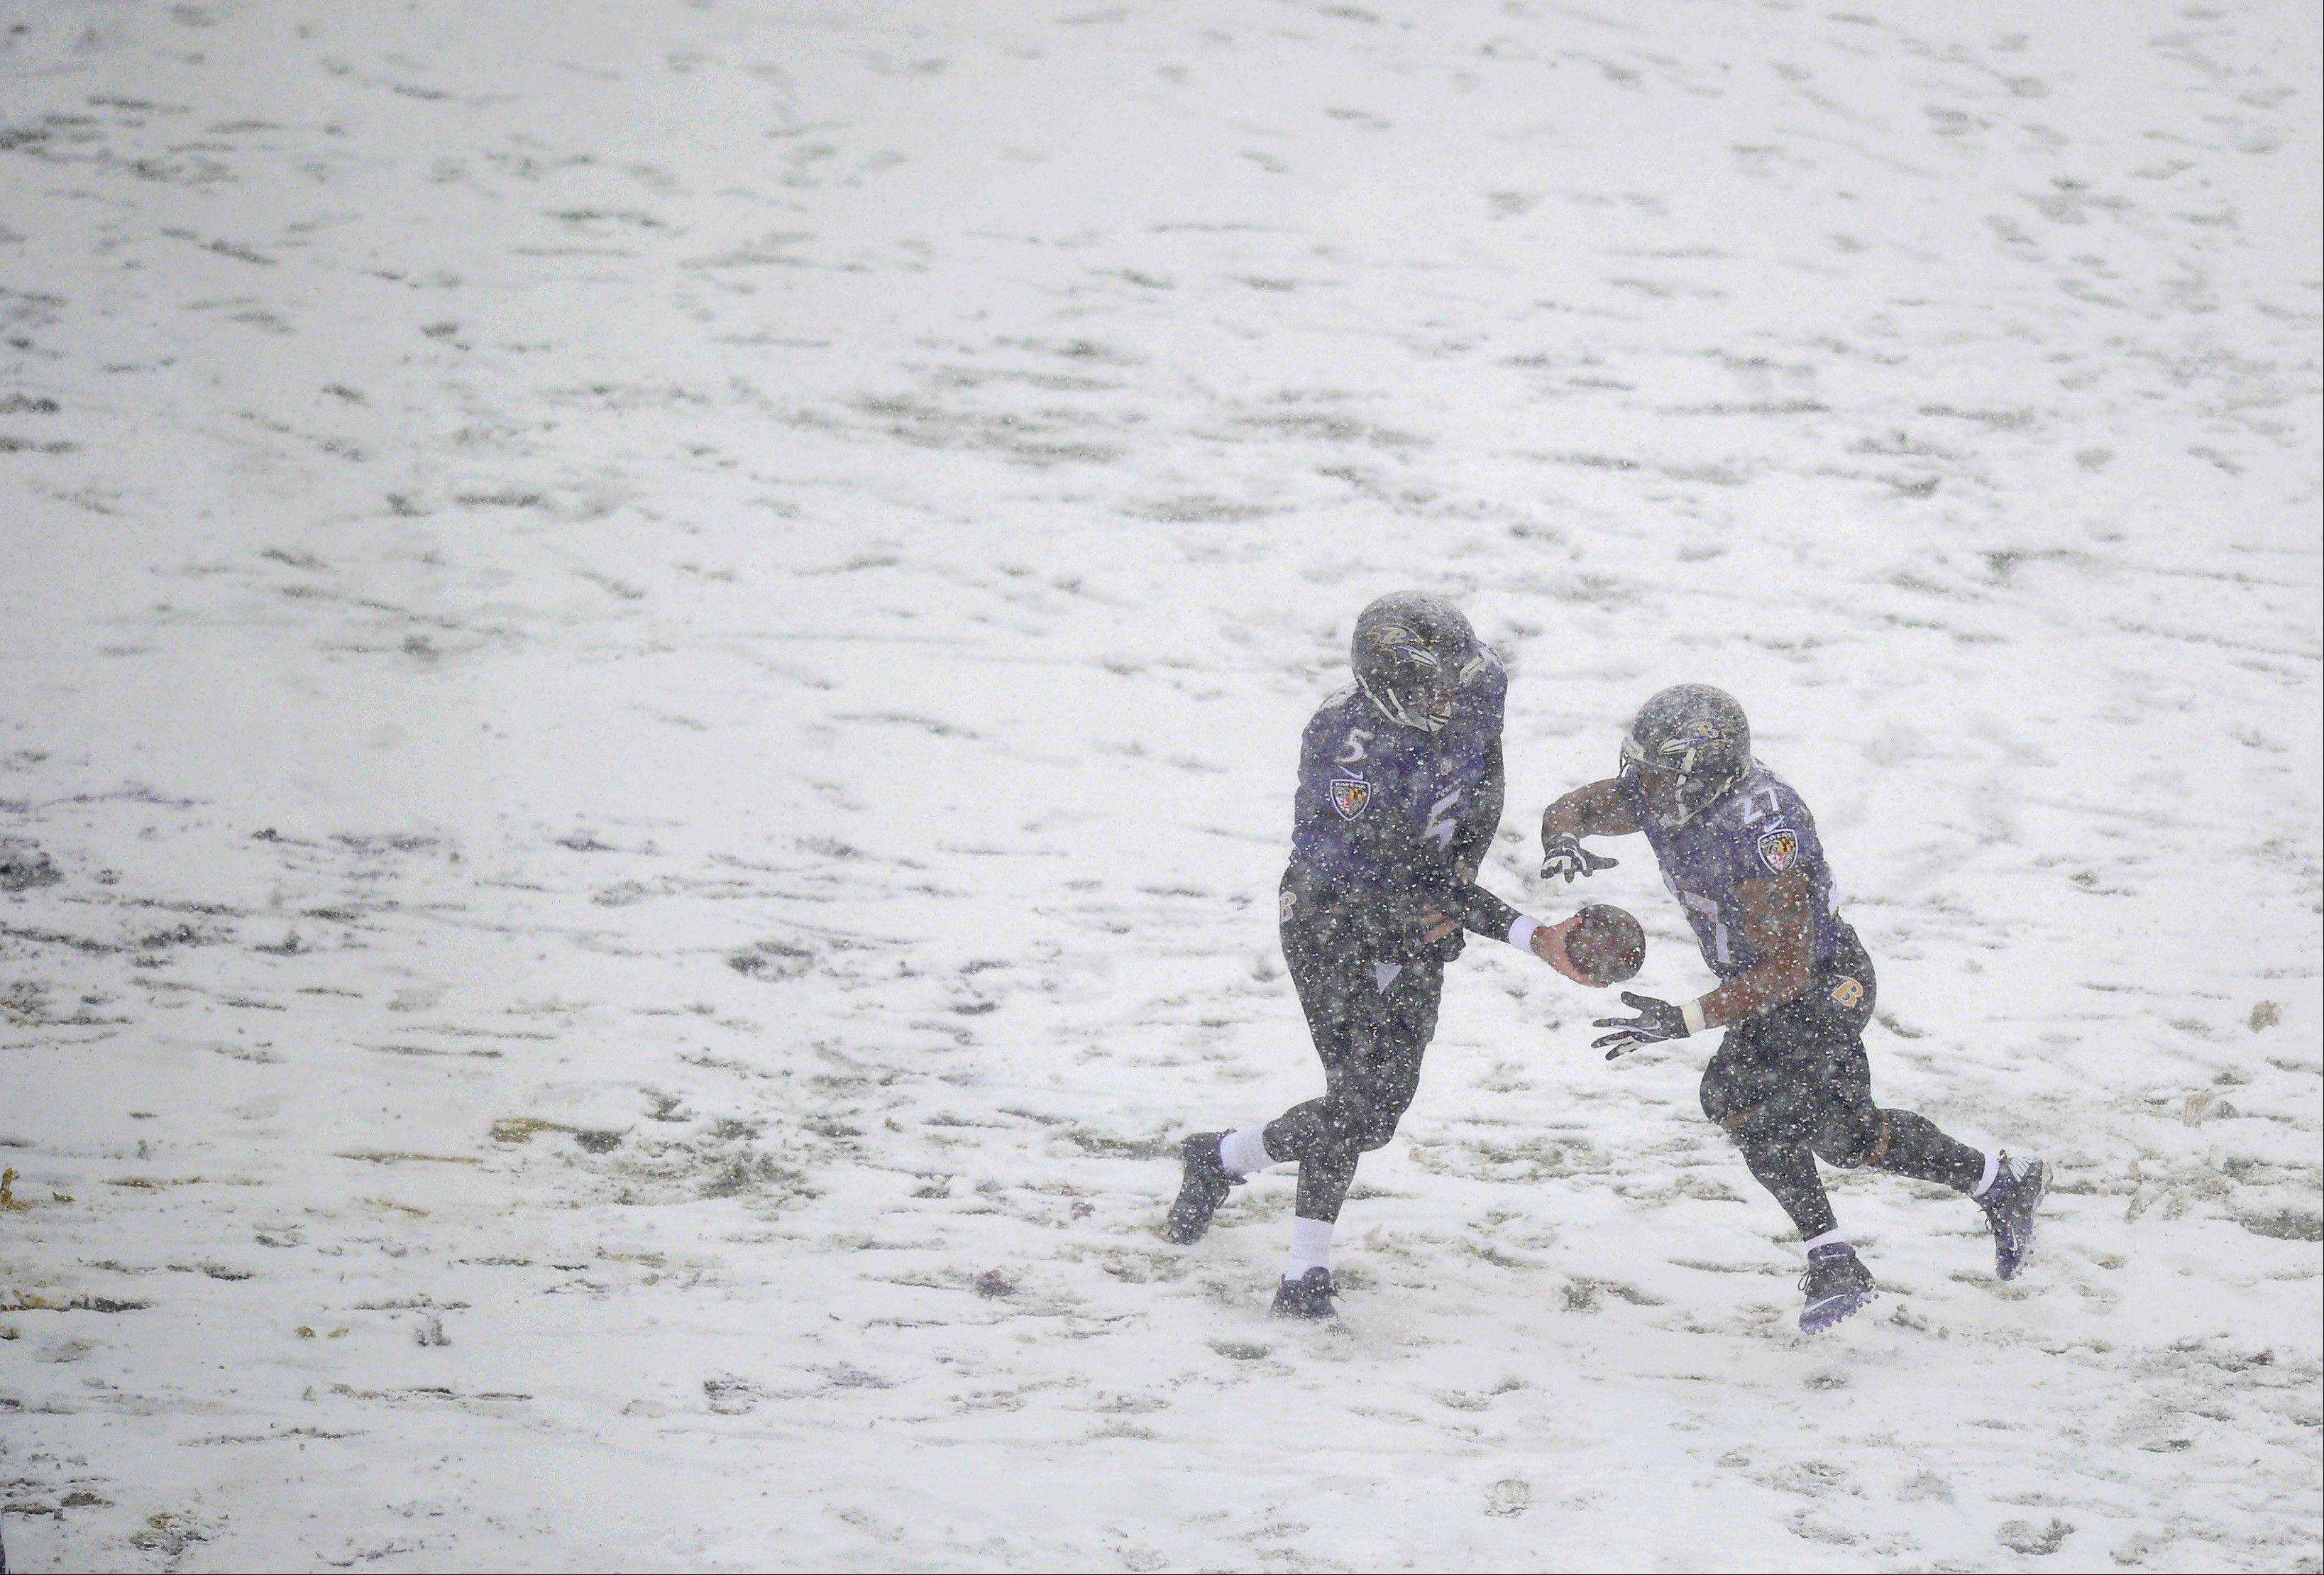 Baltimore Ravens quarterback Joe Flacco, left, hands the ball off to running back Ray Rice as snow falls in the first half of an NFL football game against the Minnesota Vikings, Sunday, Dec. 8, 2013, in Baltimore.